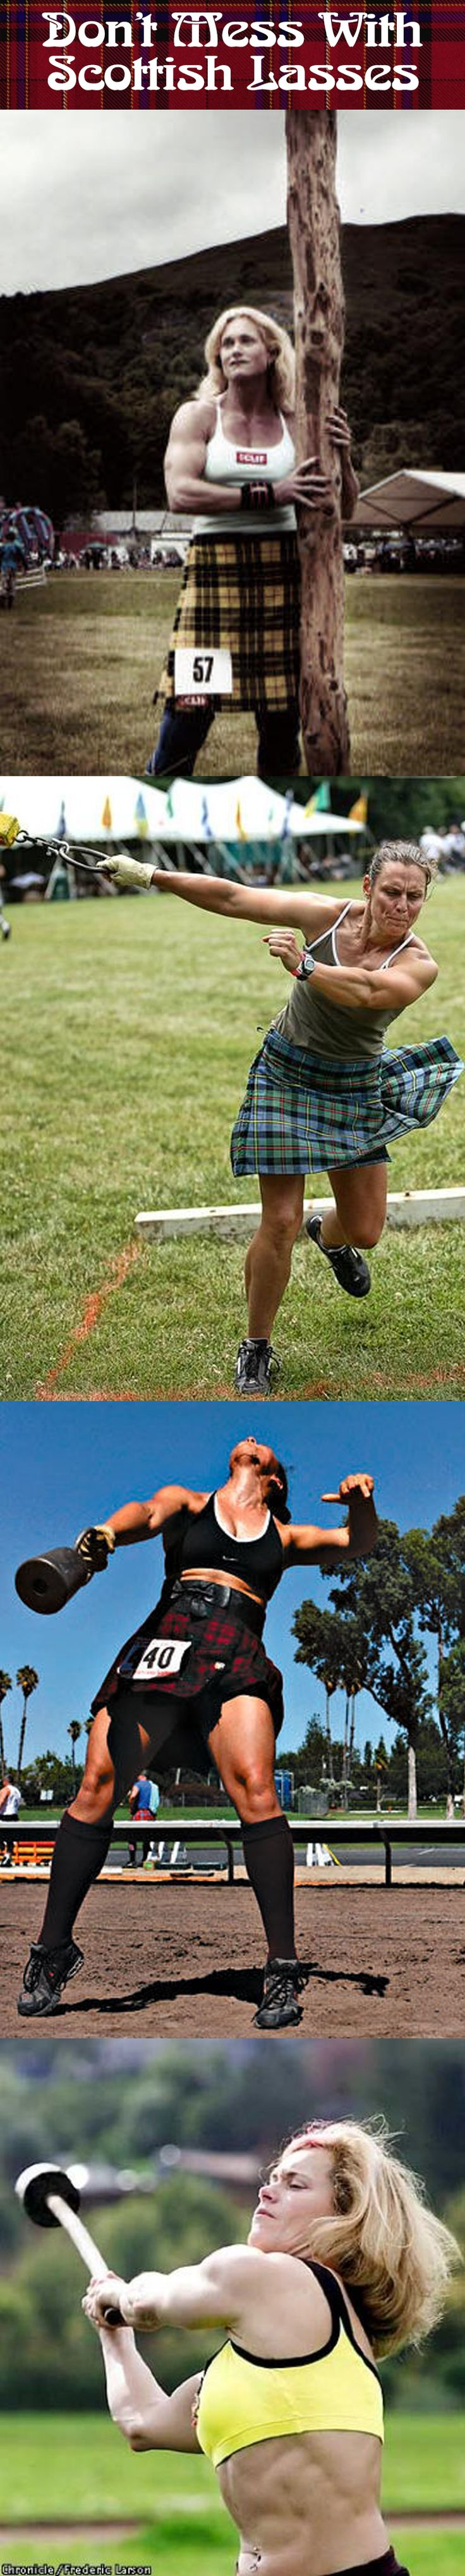 Highland Games, being largely tests of physical strength have traditionally been an exclusively male endeavor. However, in recent years more and more female competitors have started getting in on the fun. And just let me add, these women are no joke.